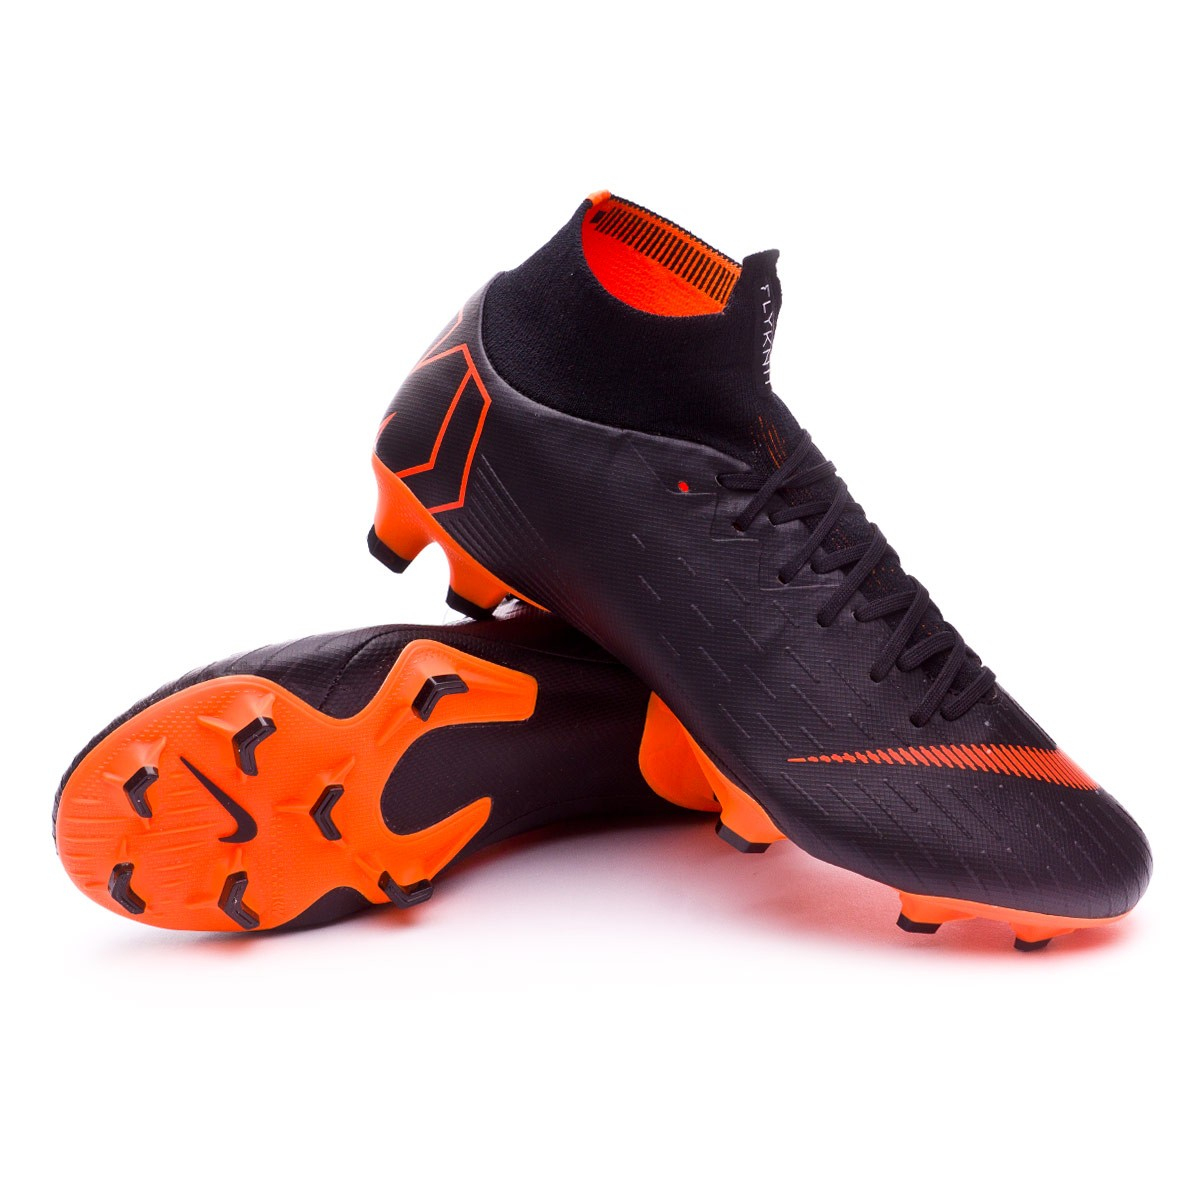 e4b8430de79d Football Boots Nike Mercurial Superfly VI Pro FG Black-Total orange ...